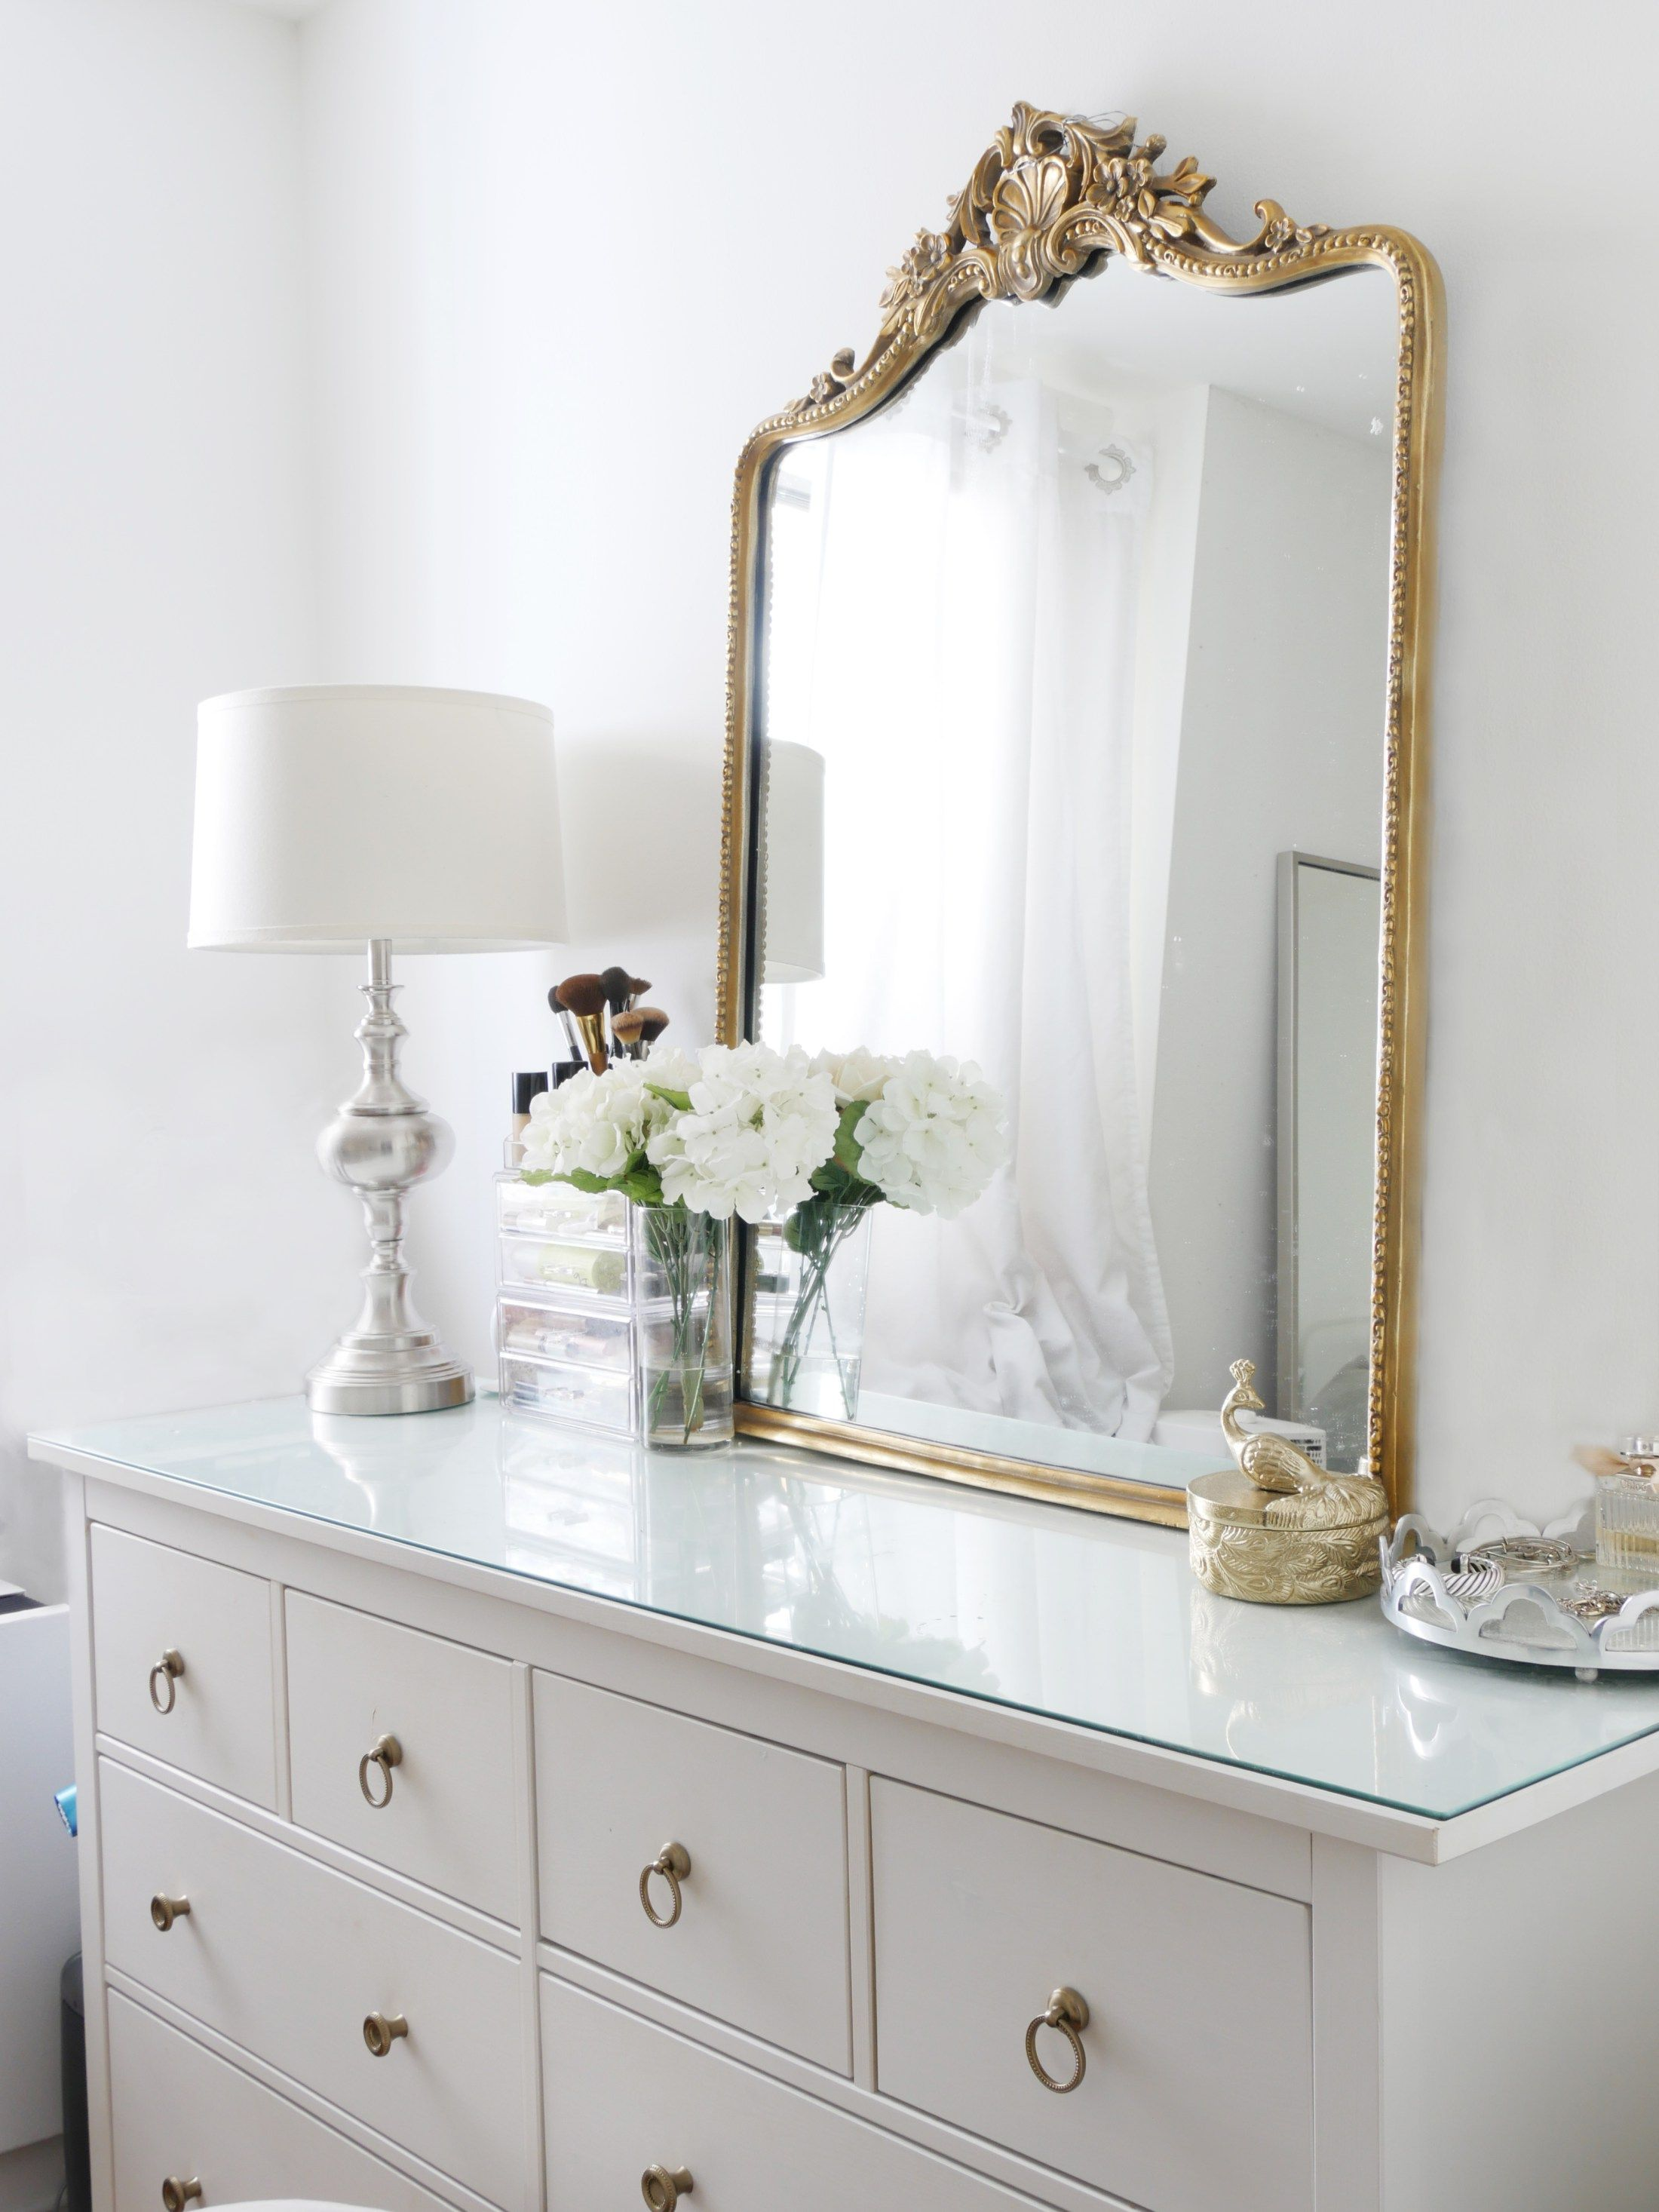 The Instant Trick To Making Your Dresser More Glamorous City Chic Decor Dresser Decor Bedroom Home Decor Bedroom Dresser Decor